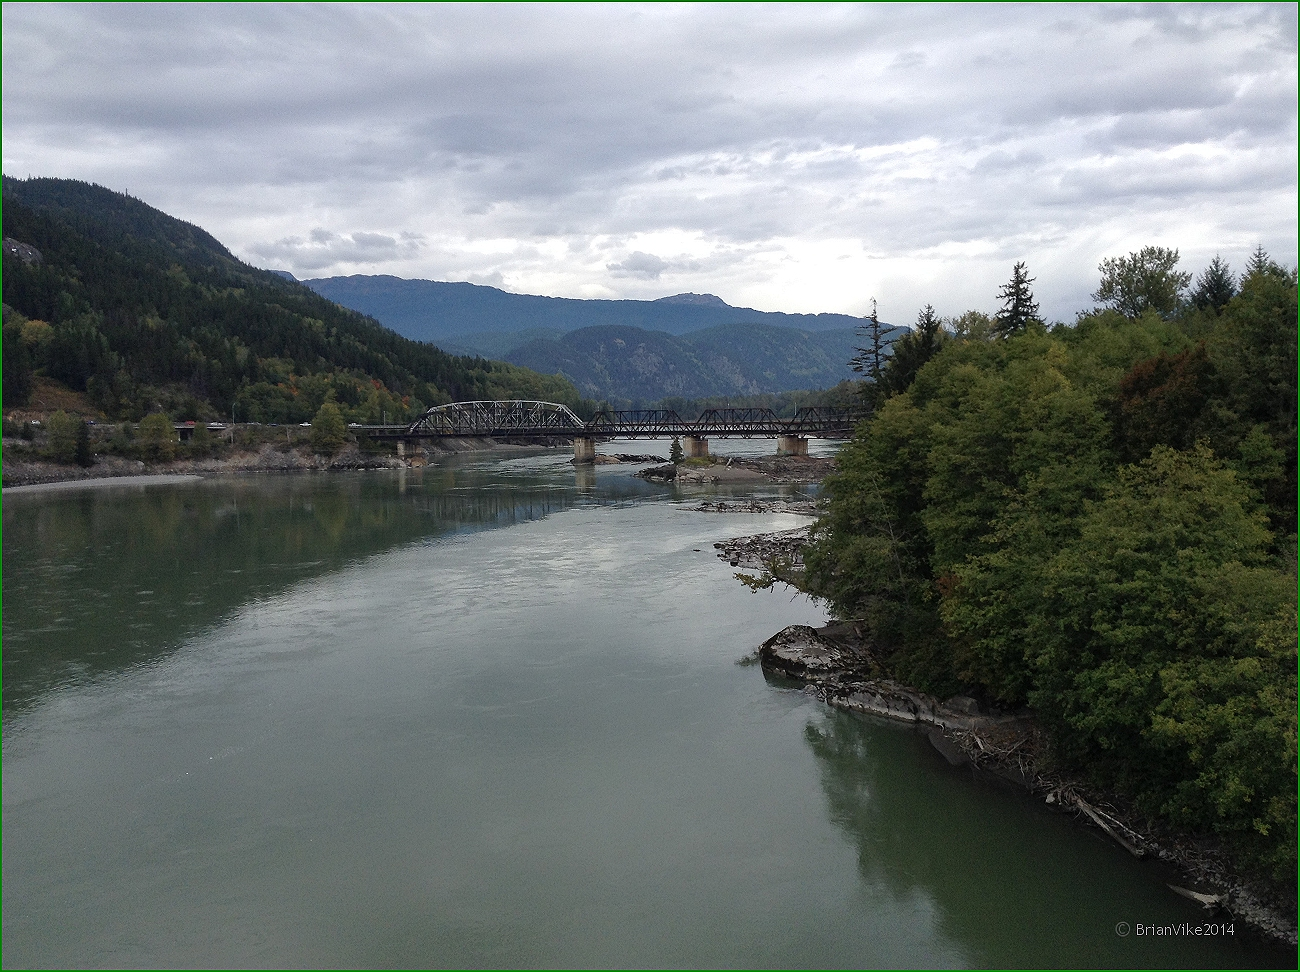 Northern Interior British Columbia: Old Skeena Bridge Over The.